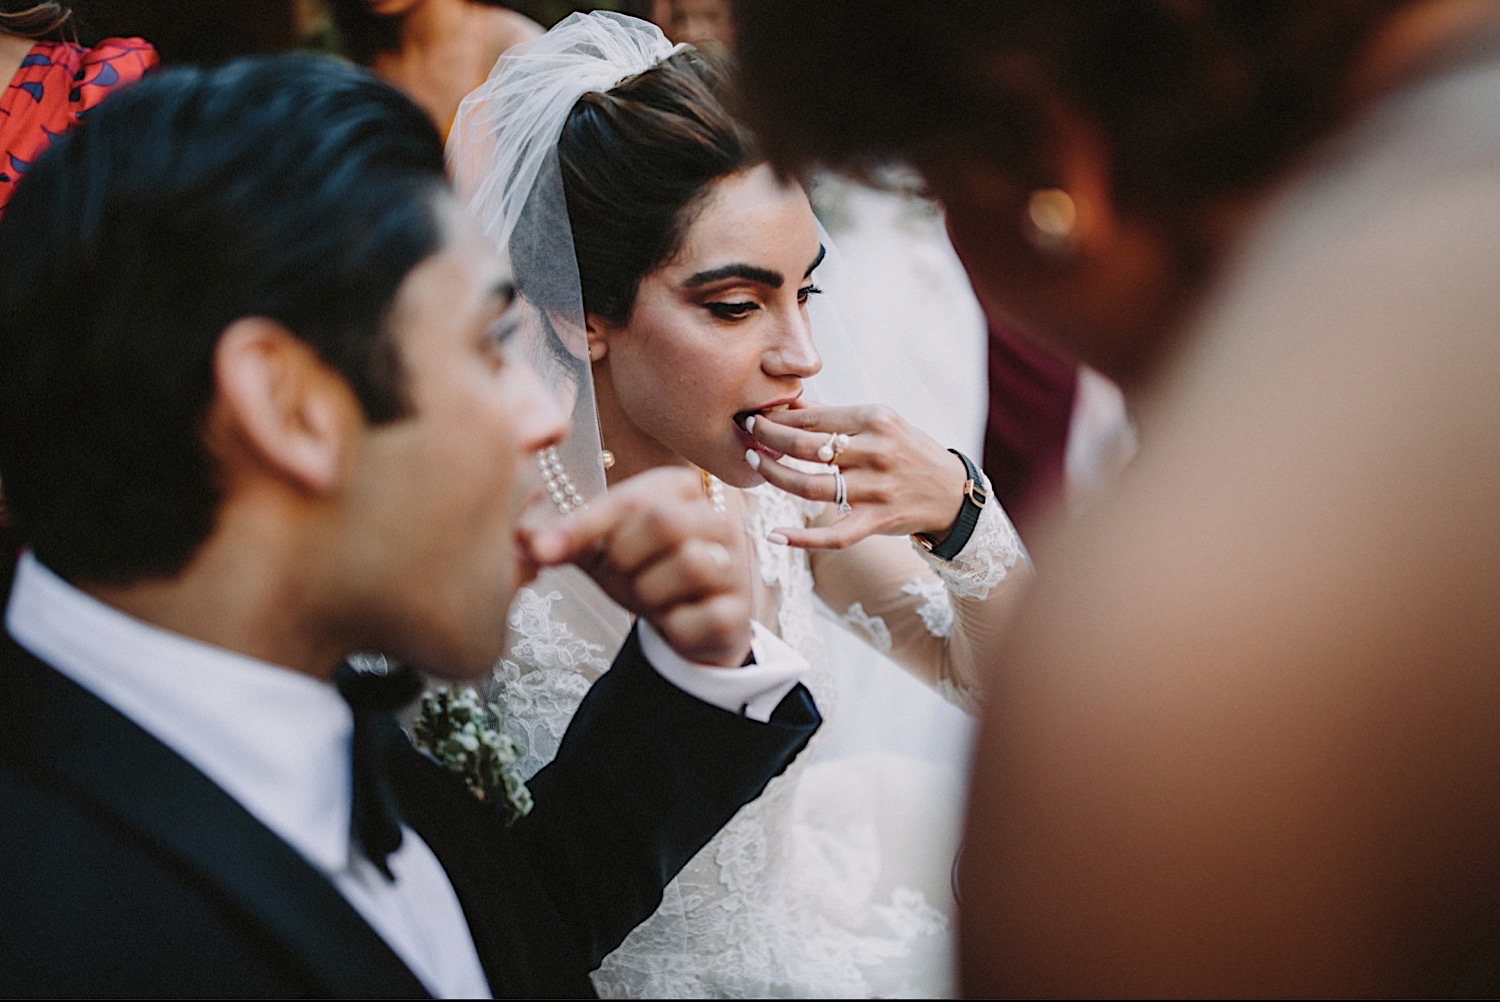 weddingphotographersevilla-persianwedding-ernestovillalba-0036.JPG